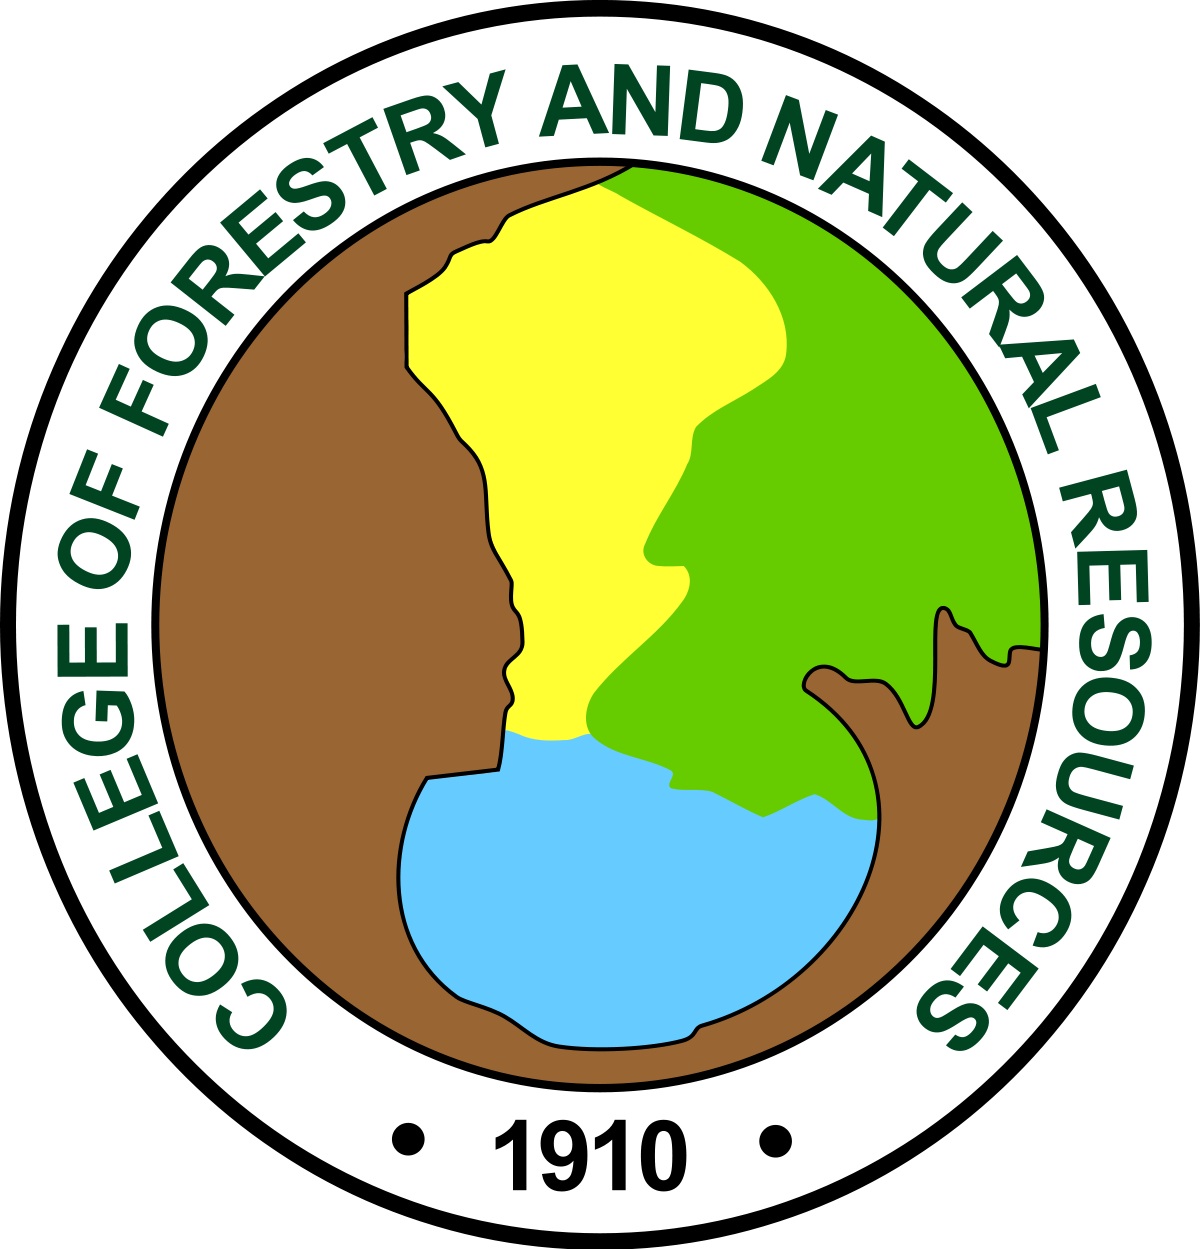 University of the philippines. Energy clipart conservation natural resource